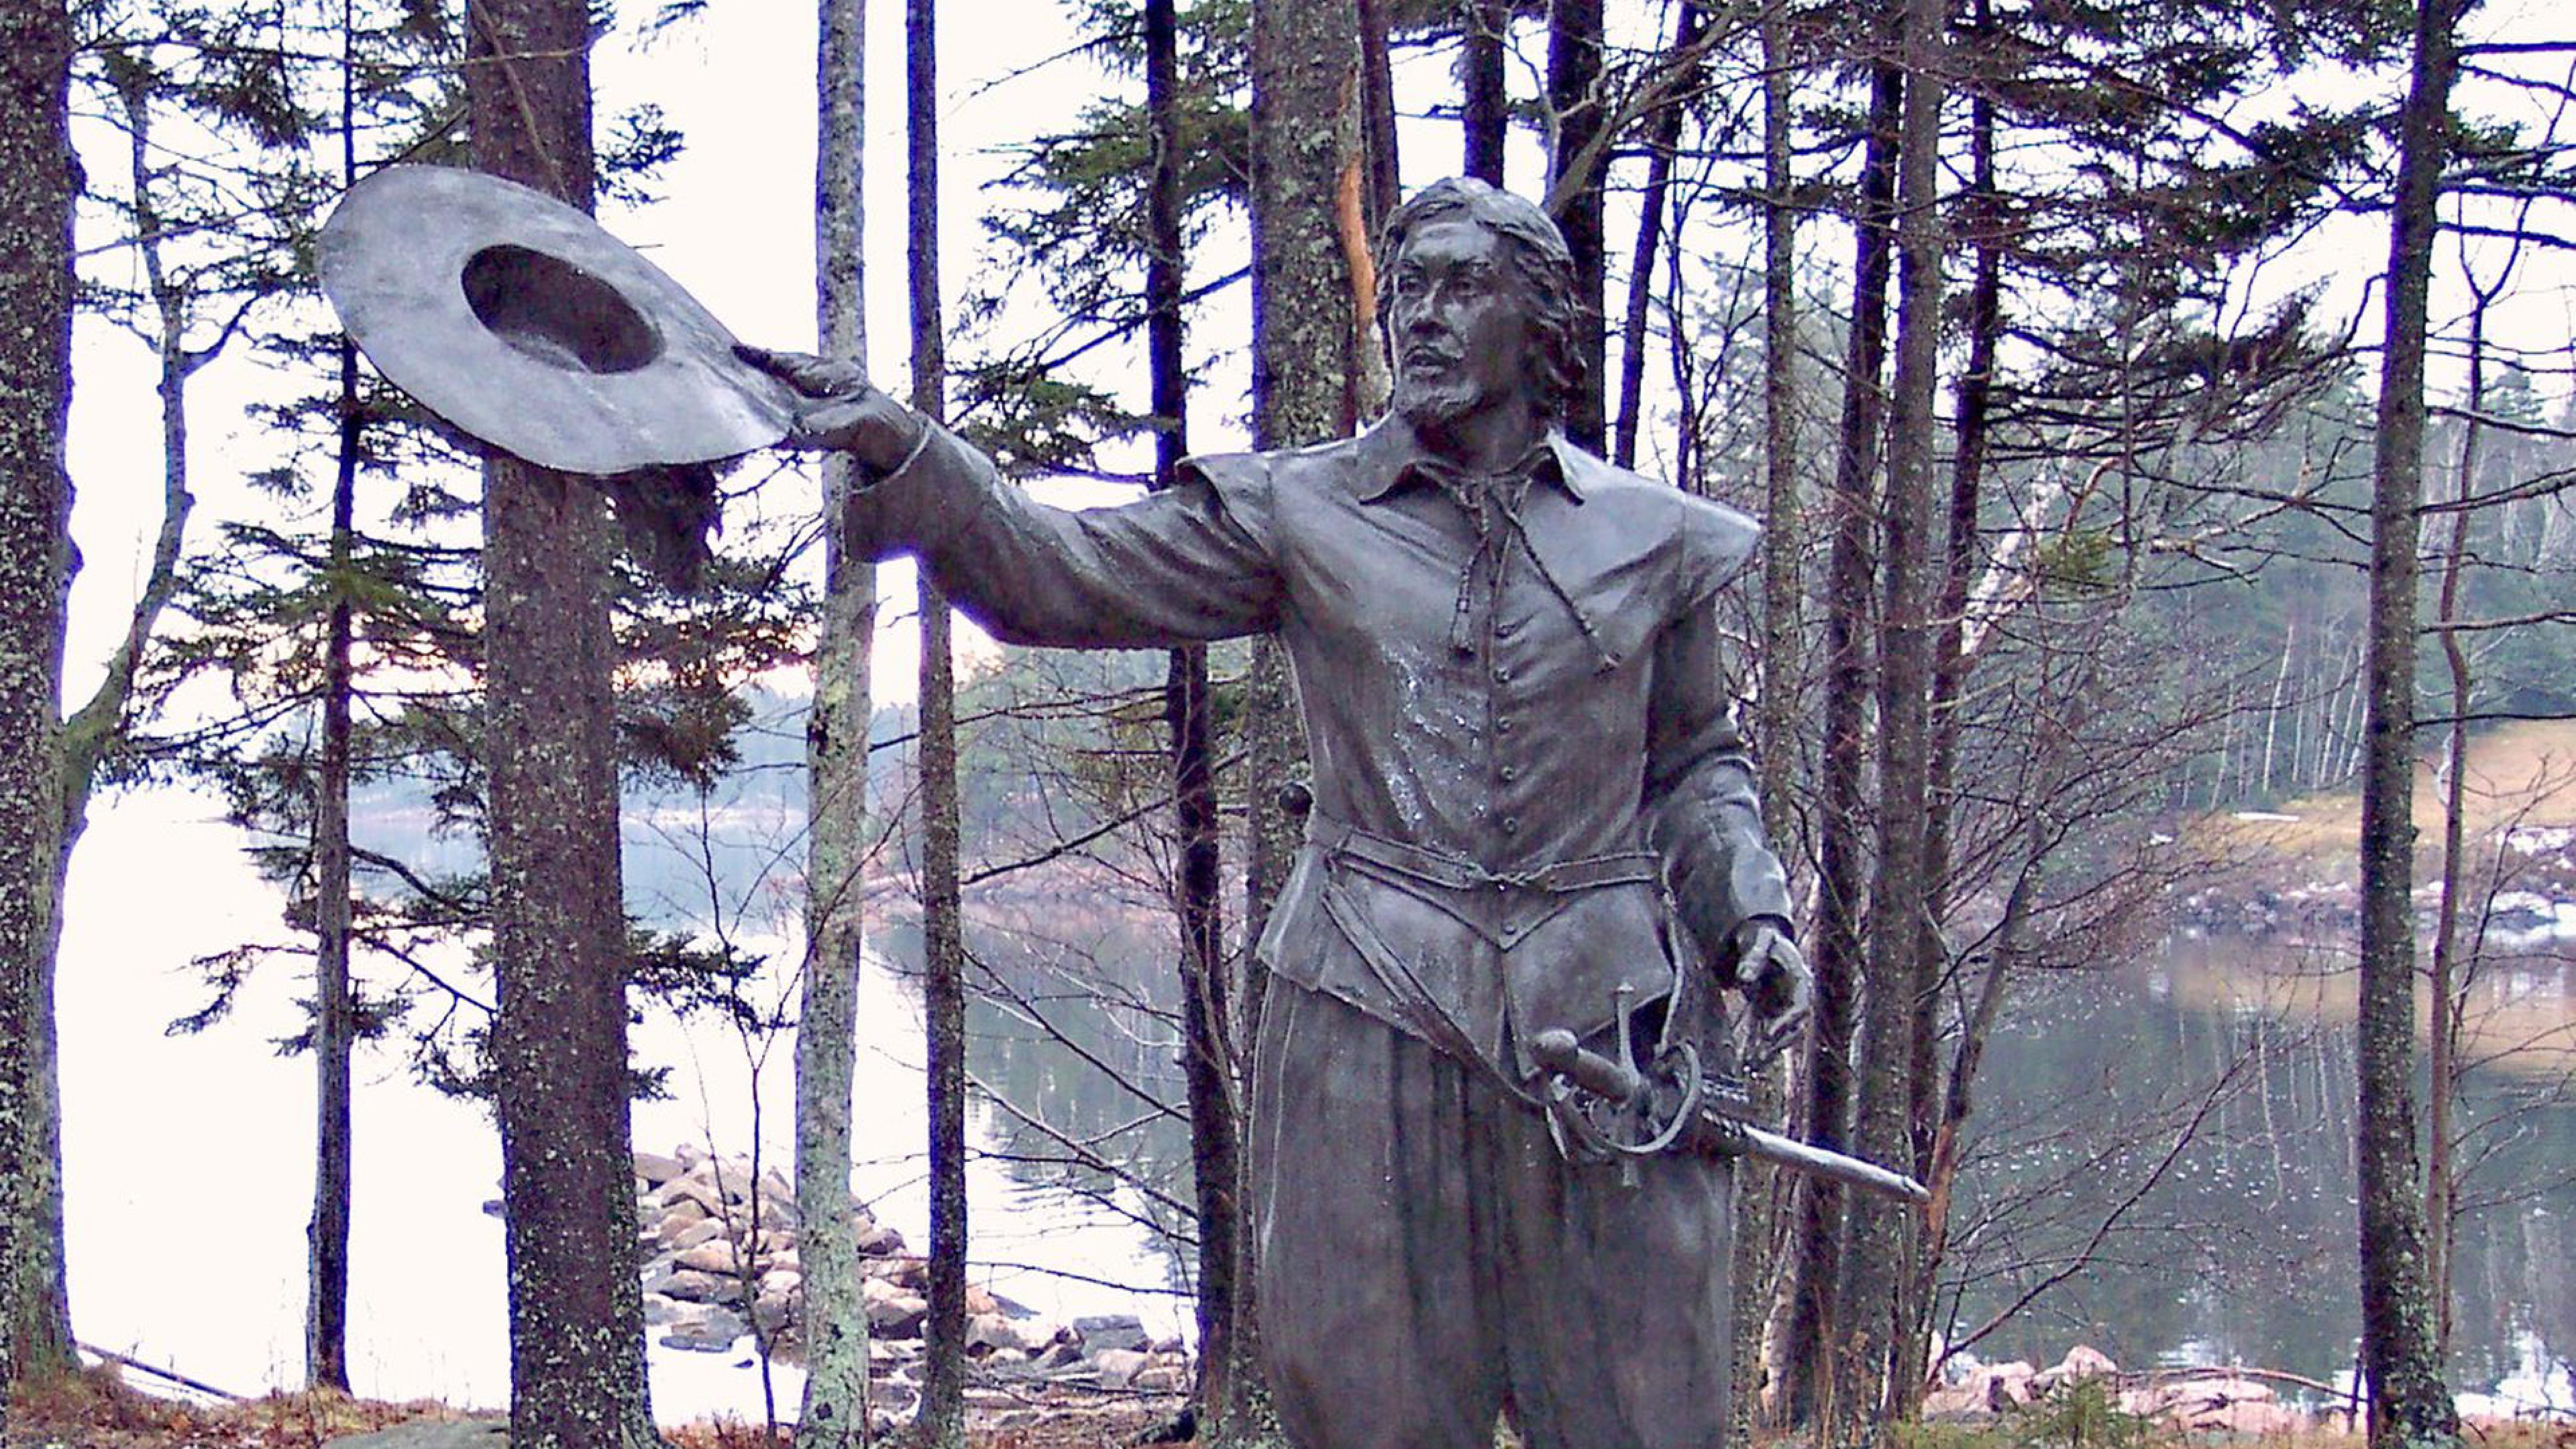 Monument of a man tipping his hat and wearing a sword